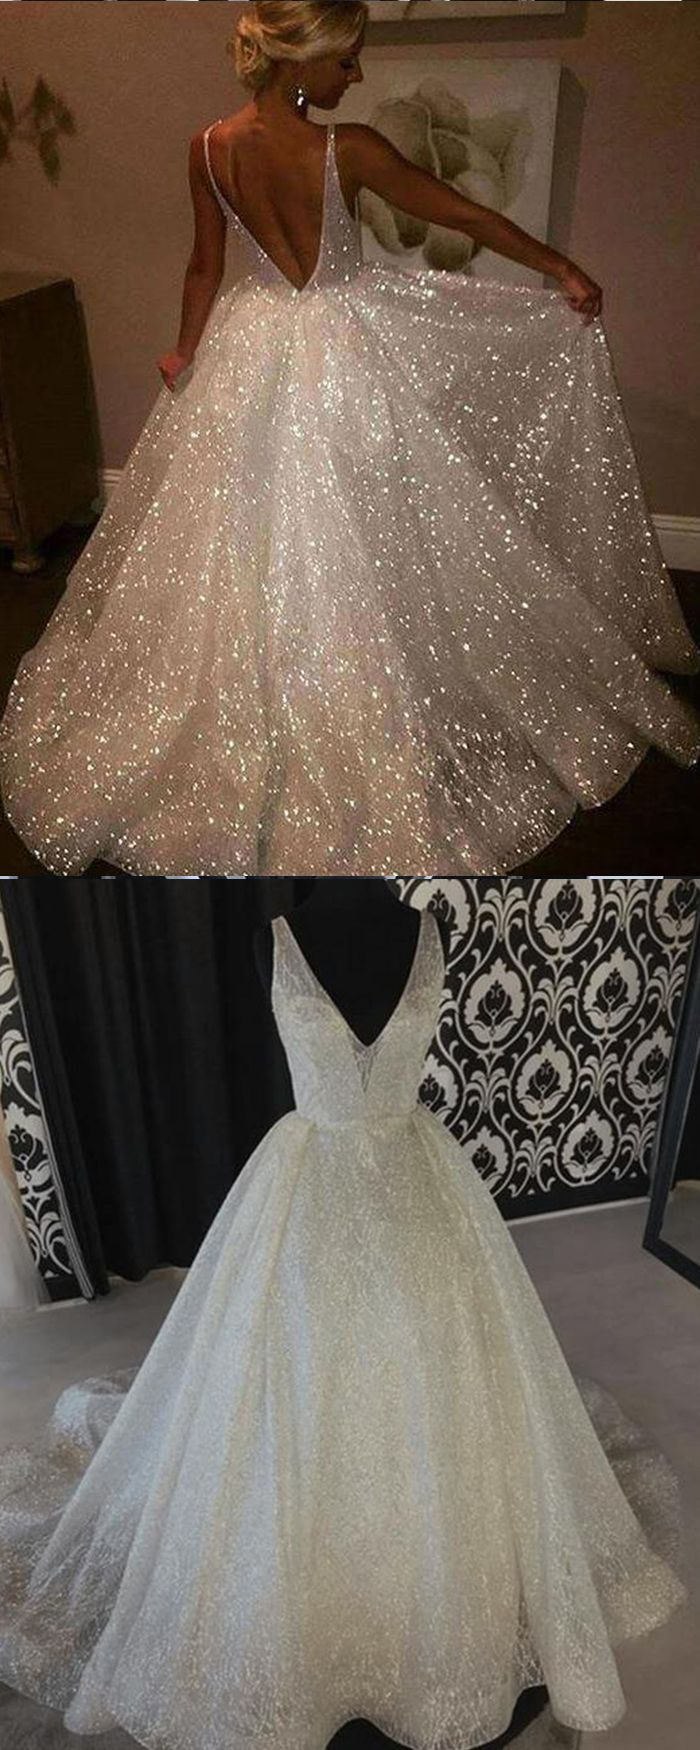 Gorgeous White V Neck Sparkle Sequin Pleated Evening Gown Pd1617 Wedding Dresses Sparkle Wedding Dress Ball Gowns Wedding [ 1750 x 700 Pixel ]